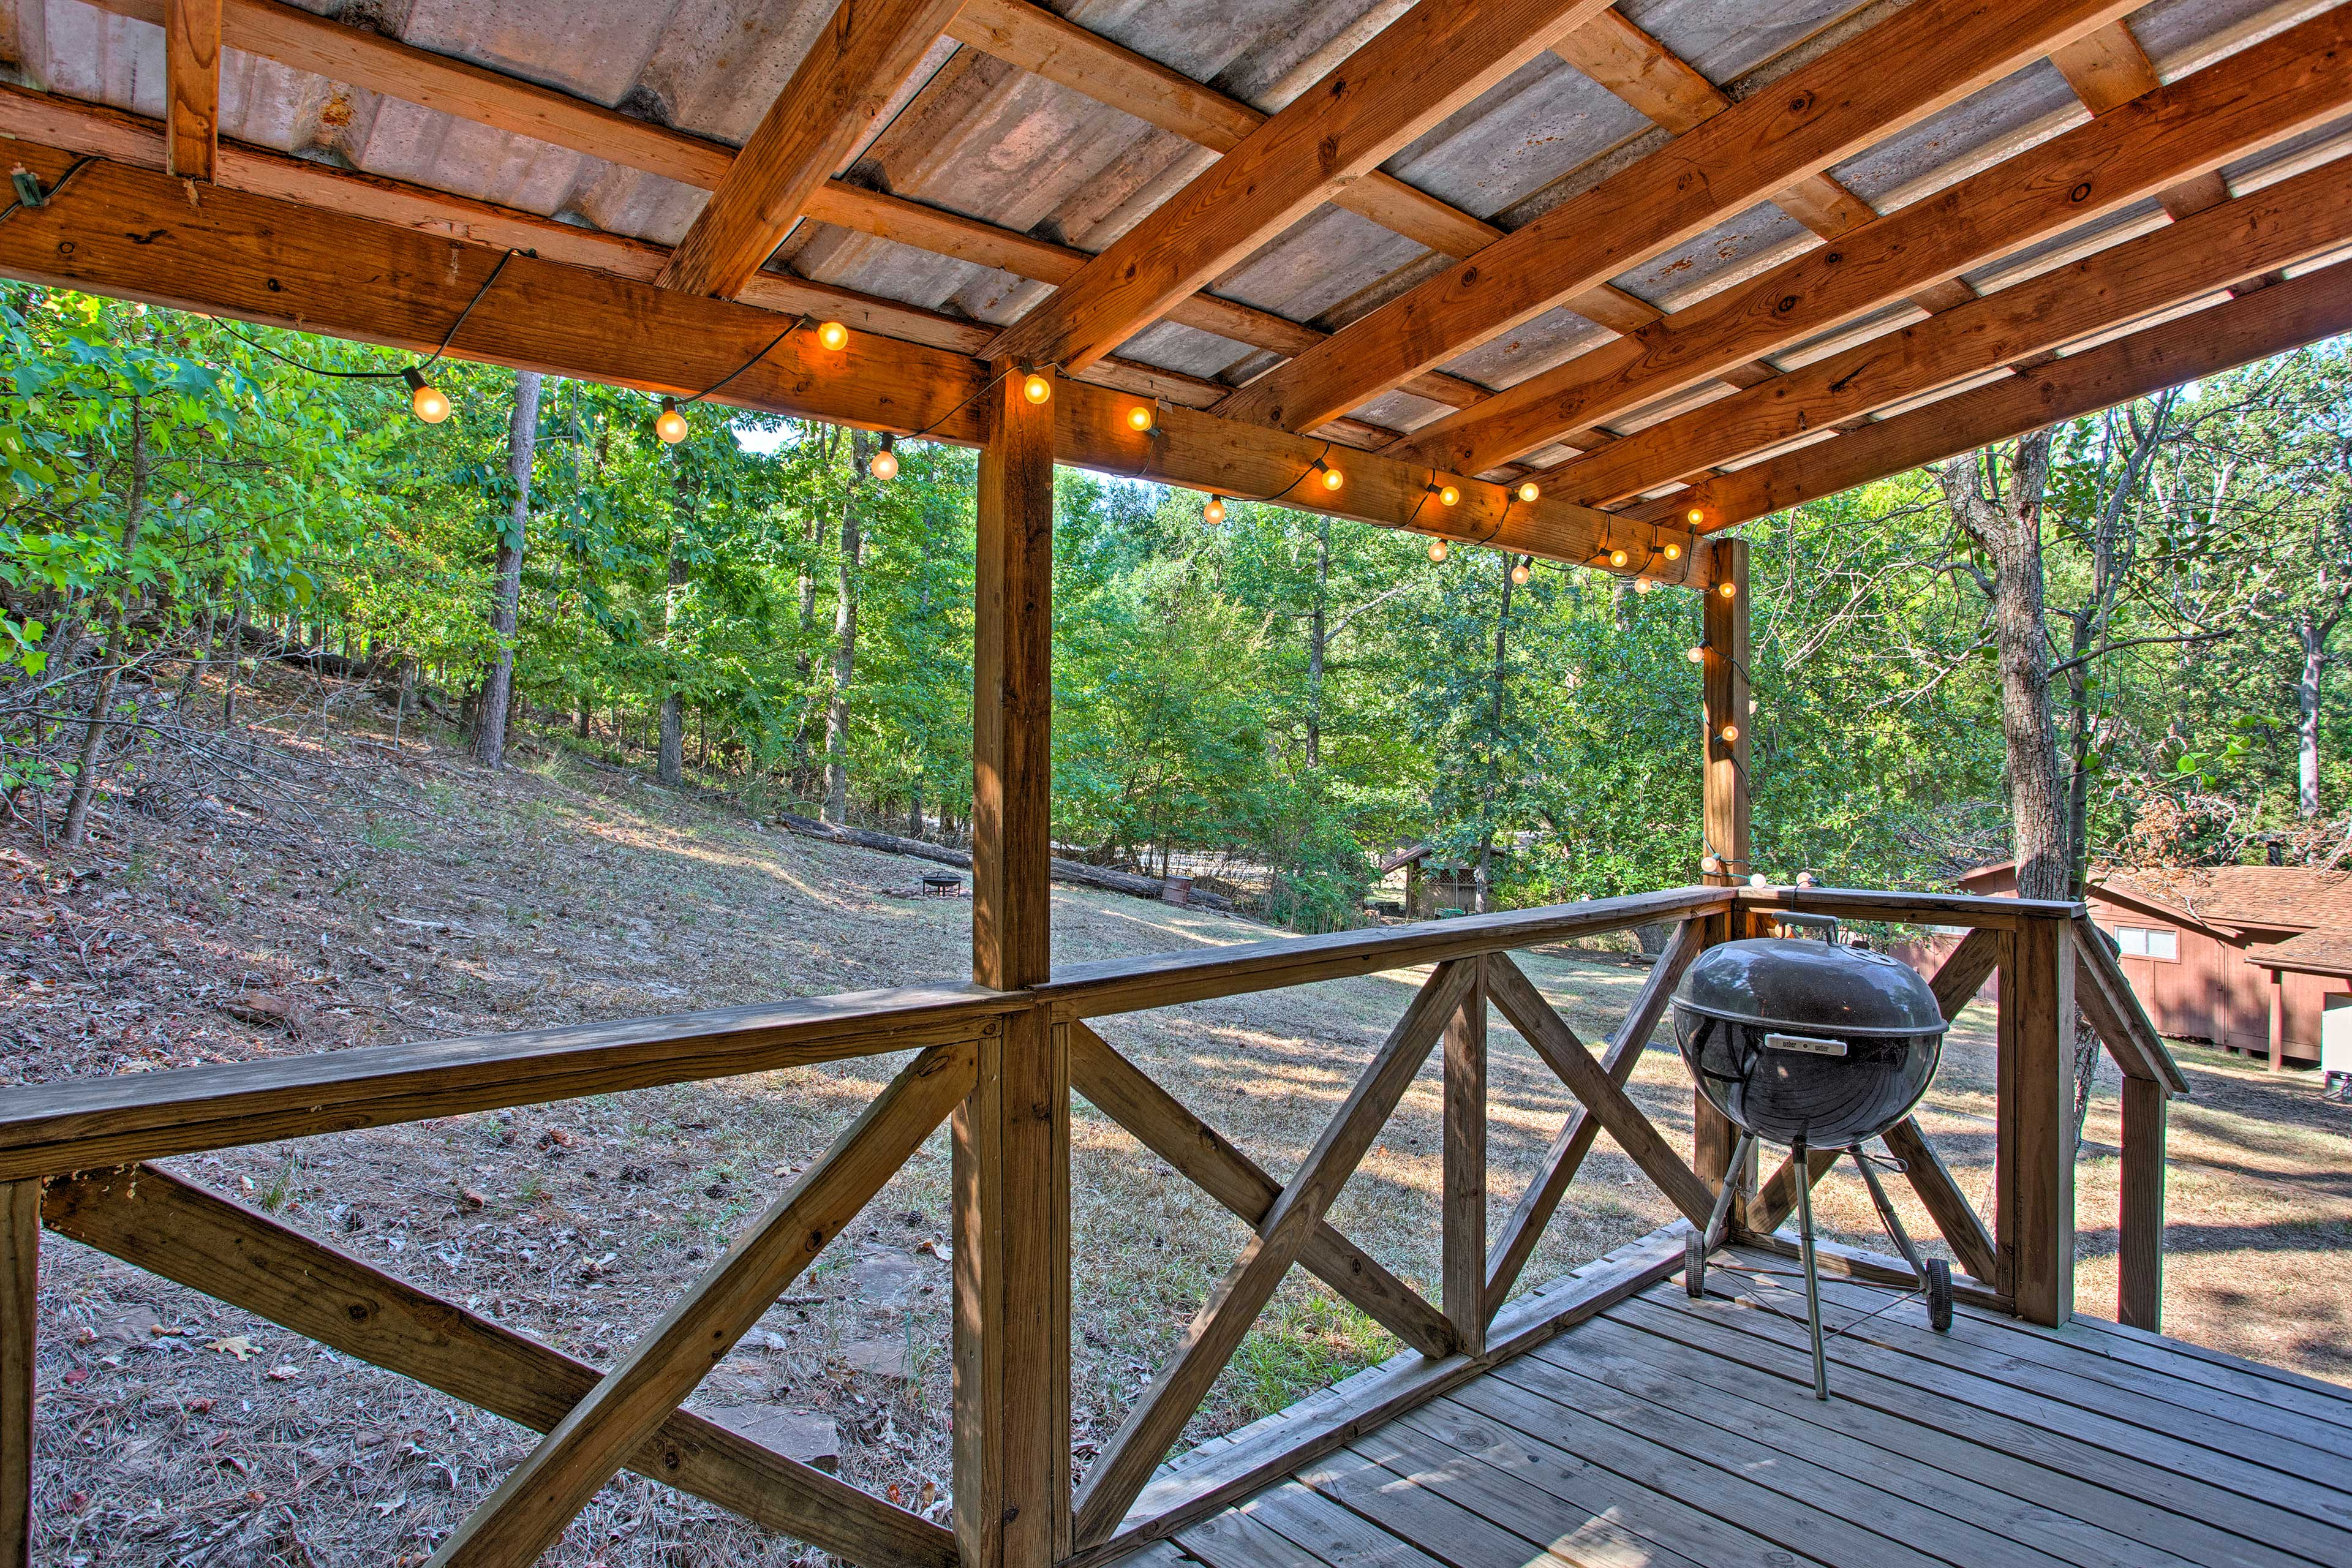 The deck is the perfect spot to watch for wildlife.